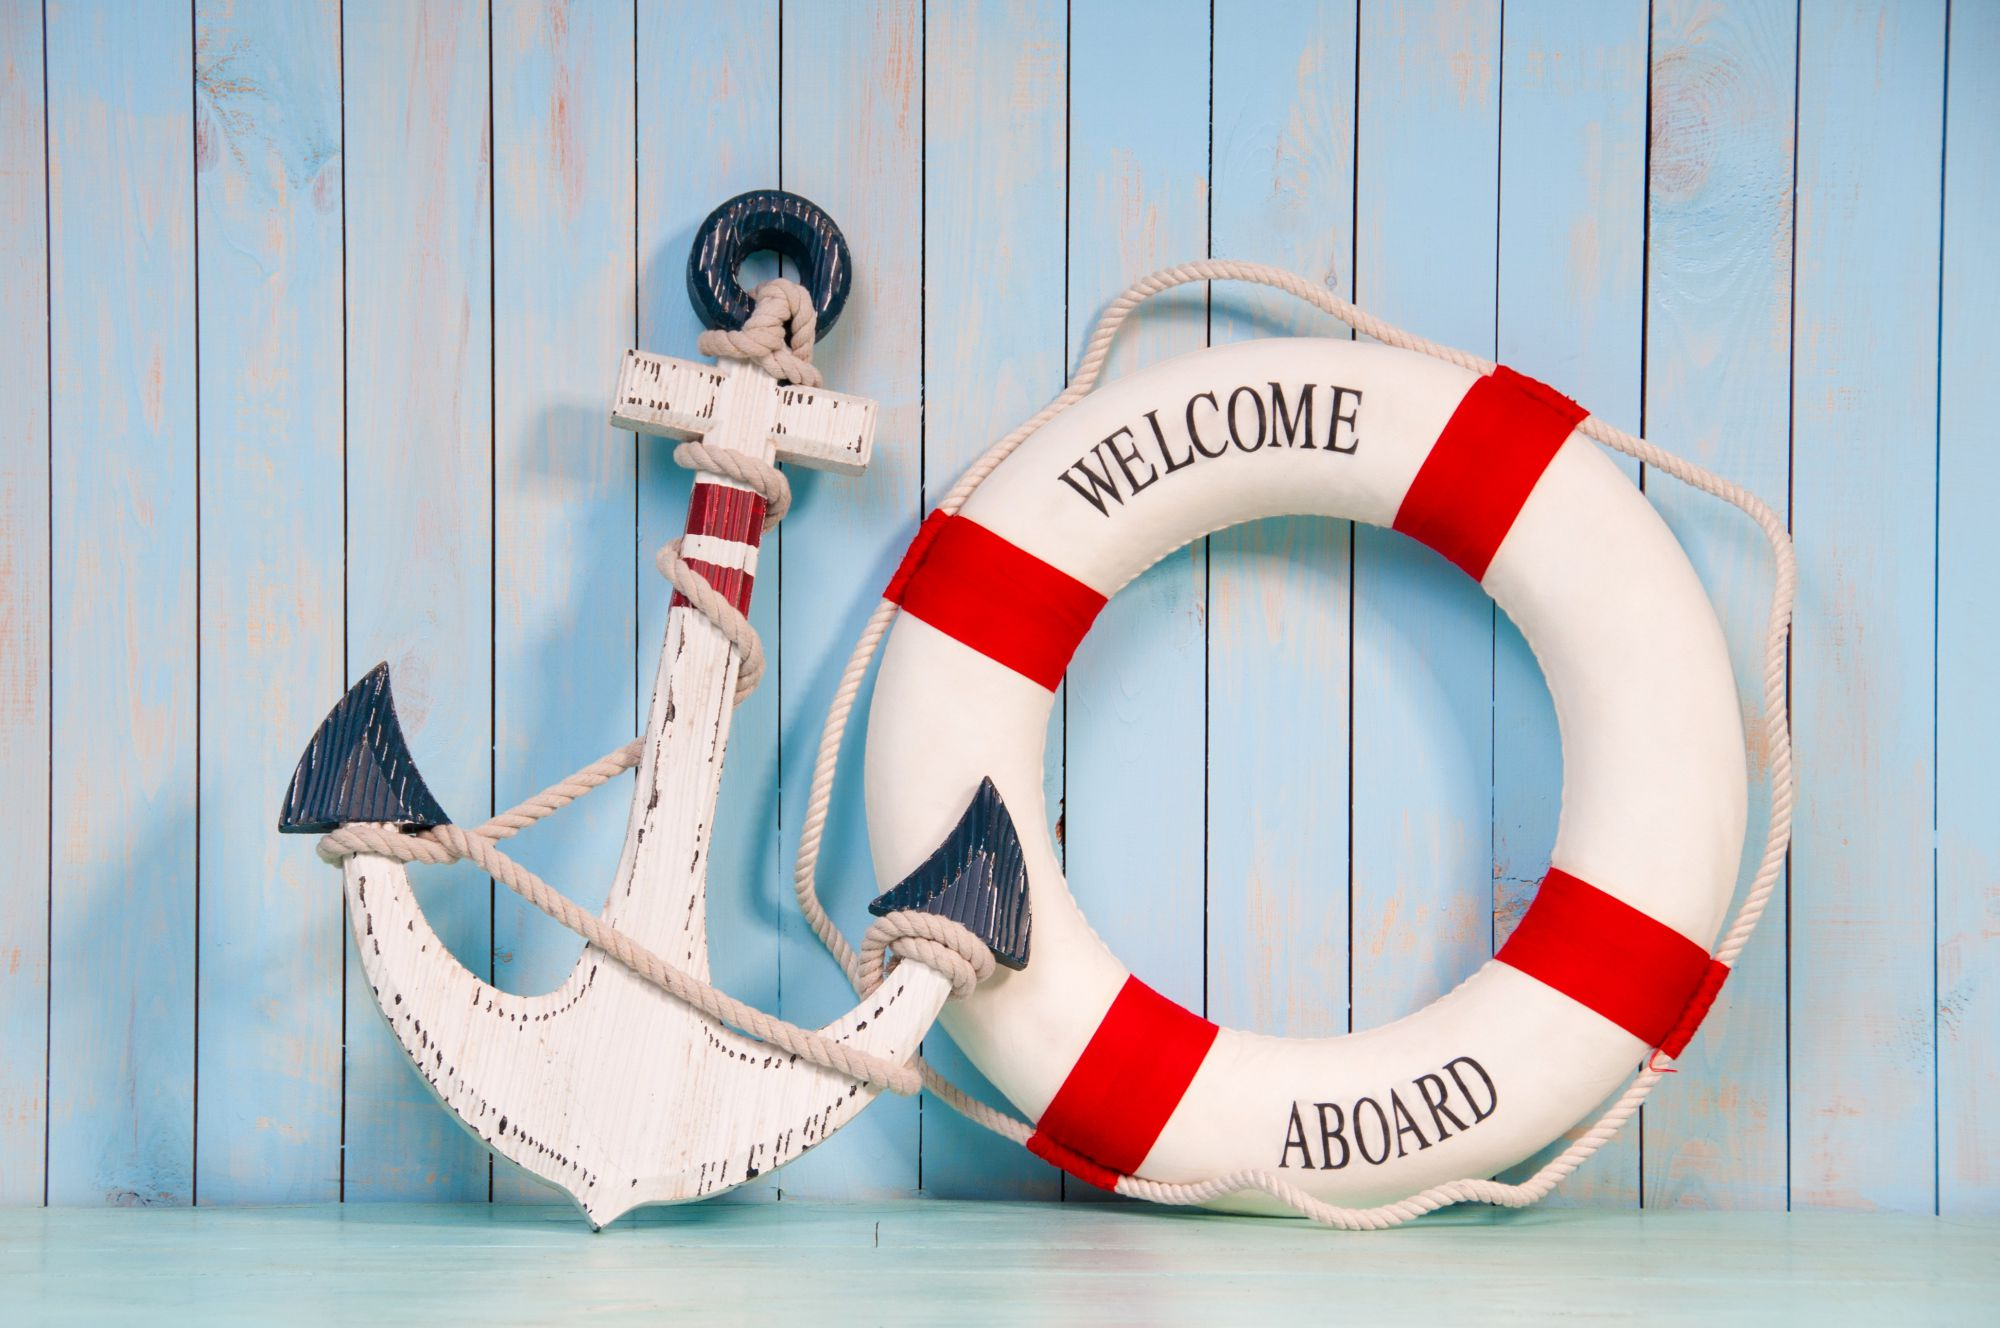 Welcome Aboard life preserver and anchor.